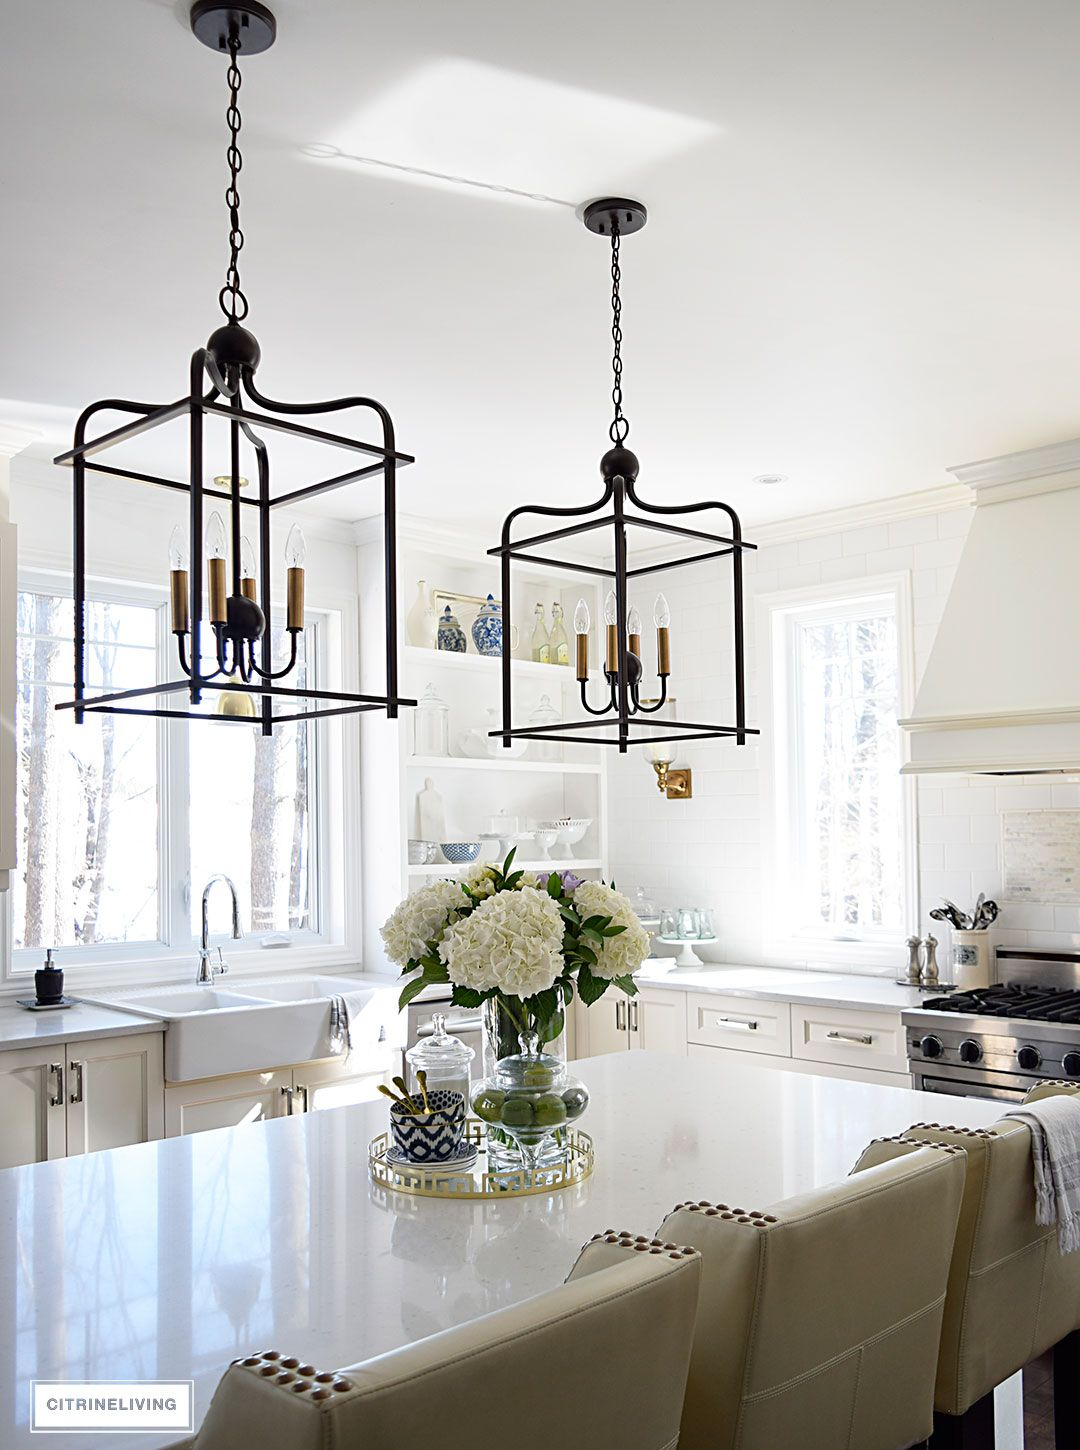 lantern style pendant lighting. Bright And Airy Kitchen With Lantern Style Pendant Lighting Over The Island. O